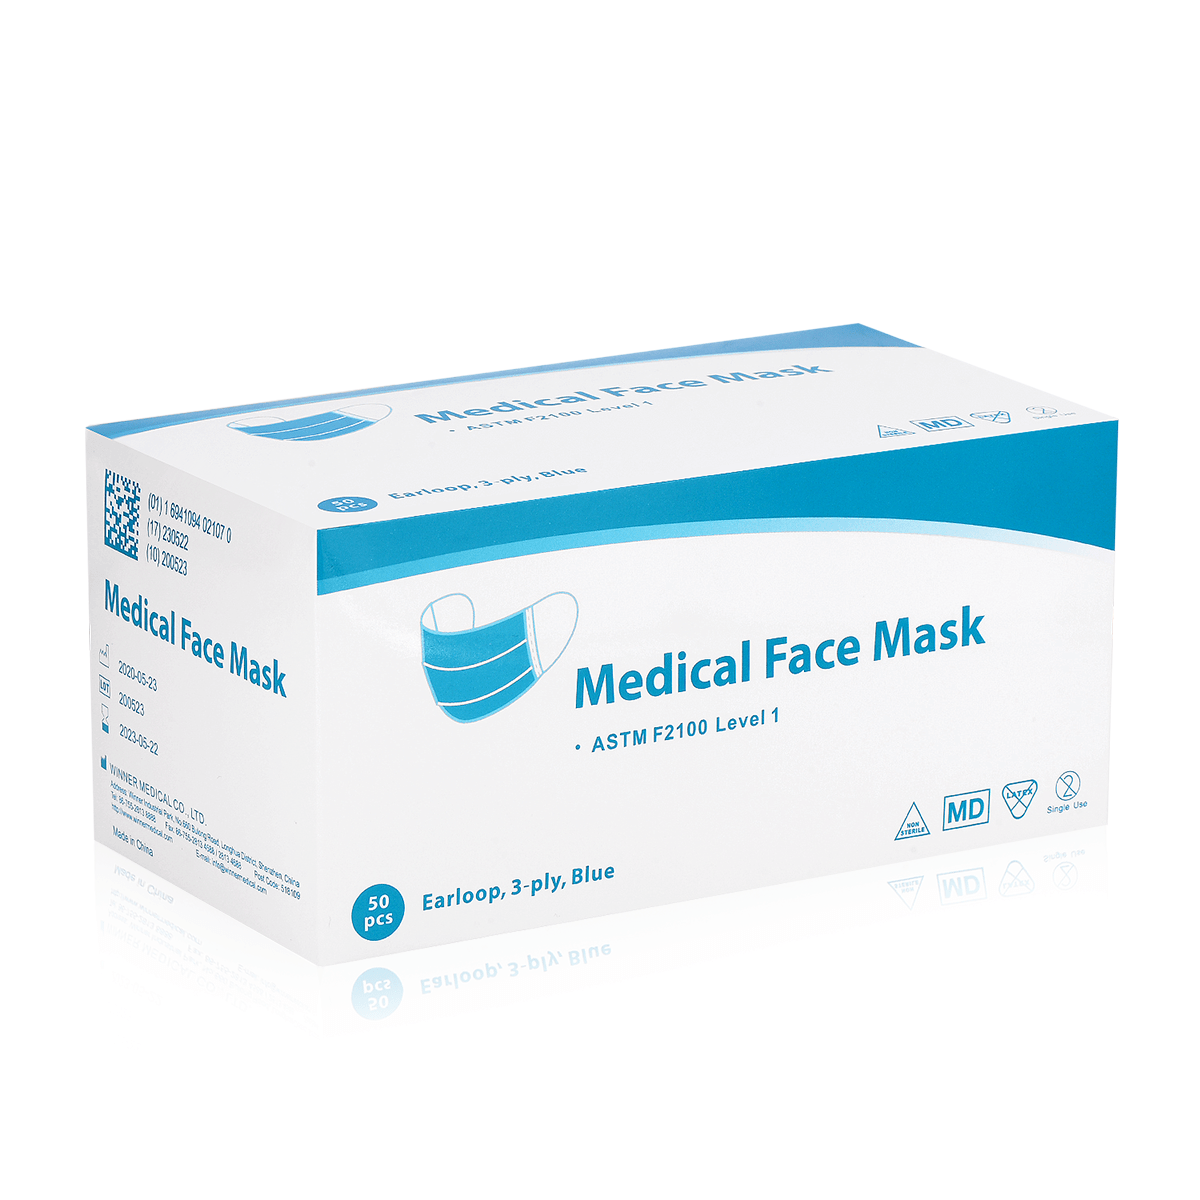 Box of 50 ASTM Level 1 Surgical Mask